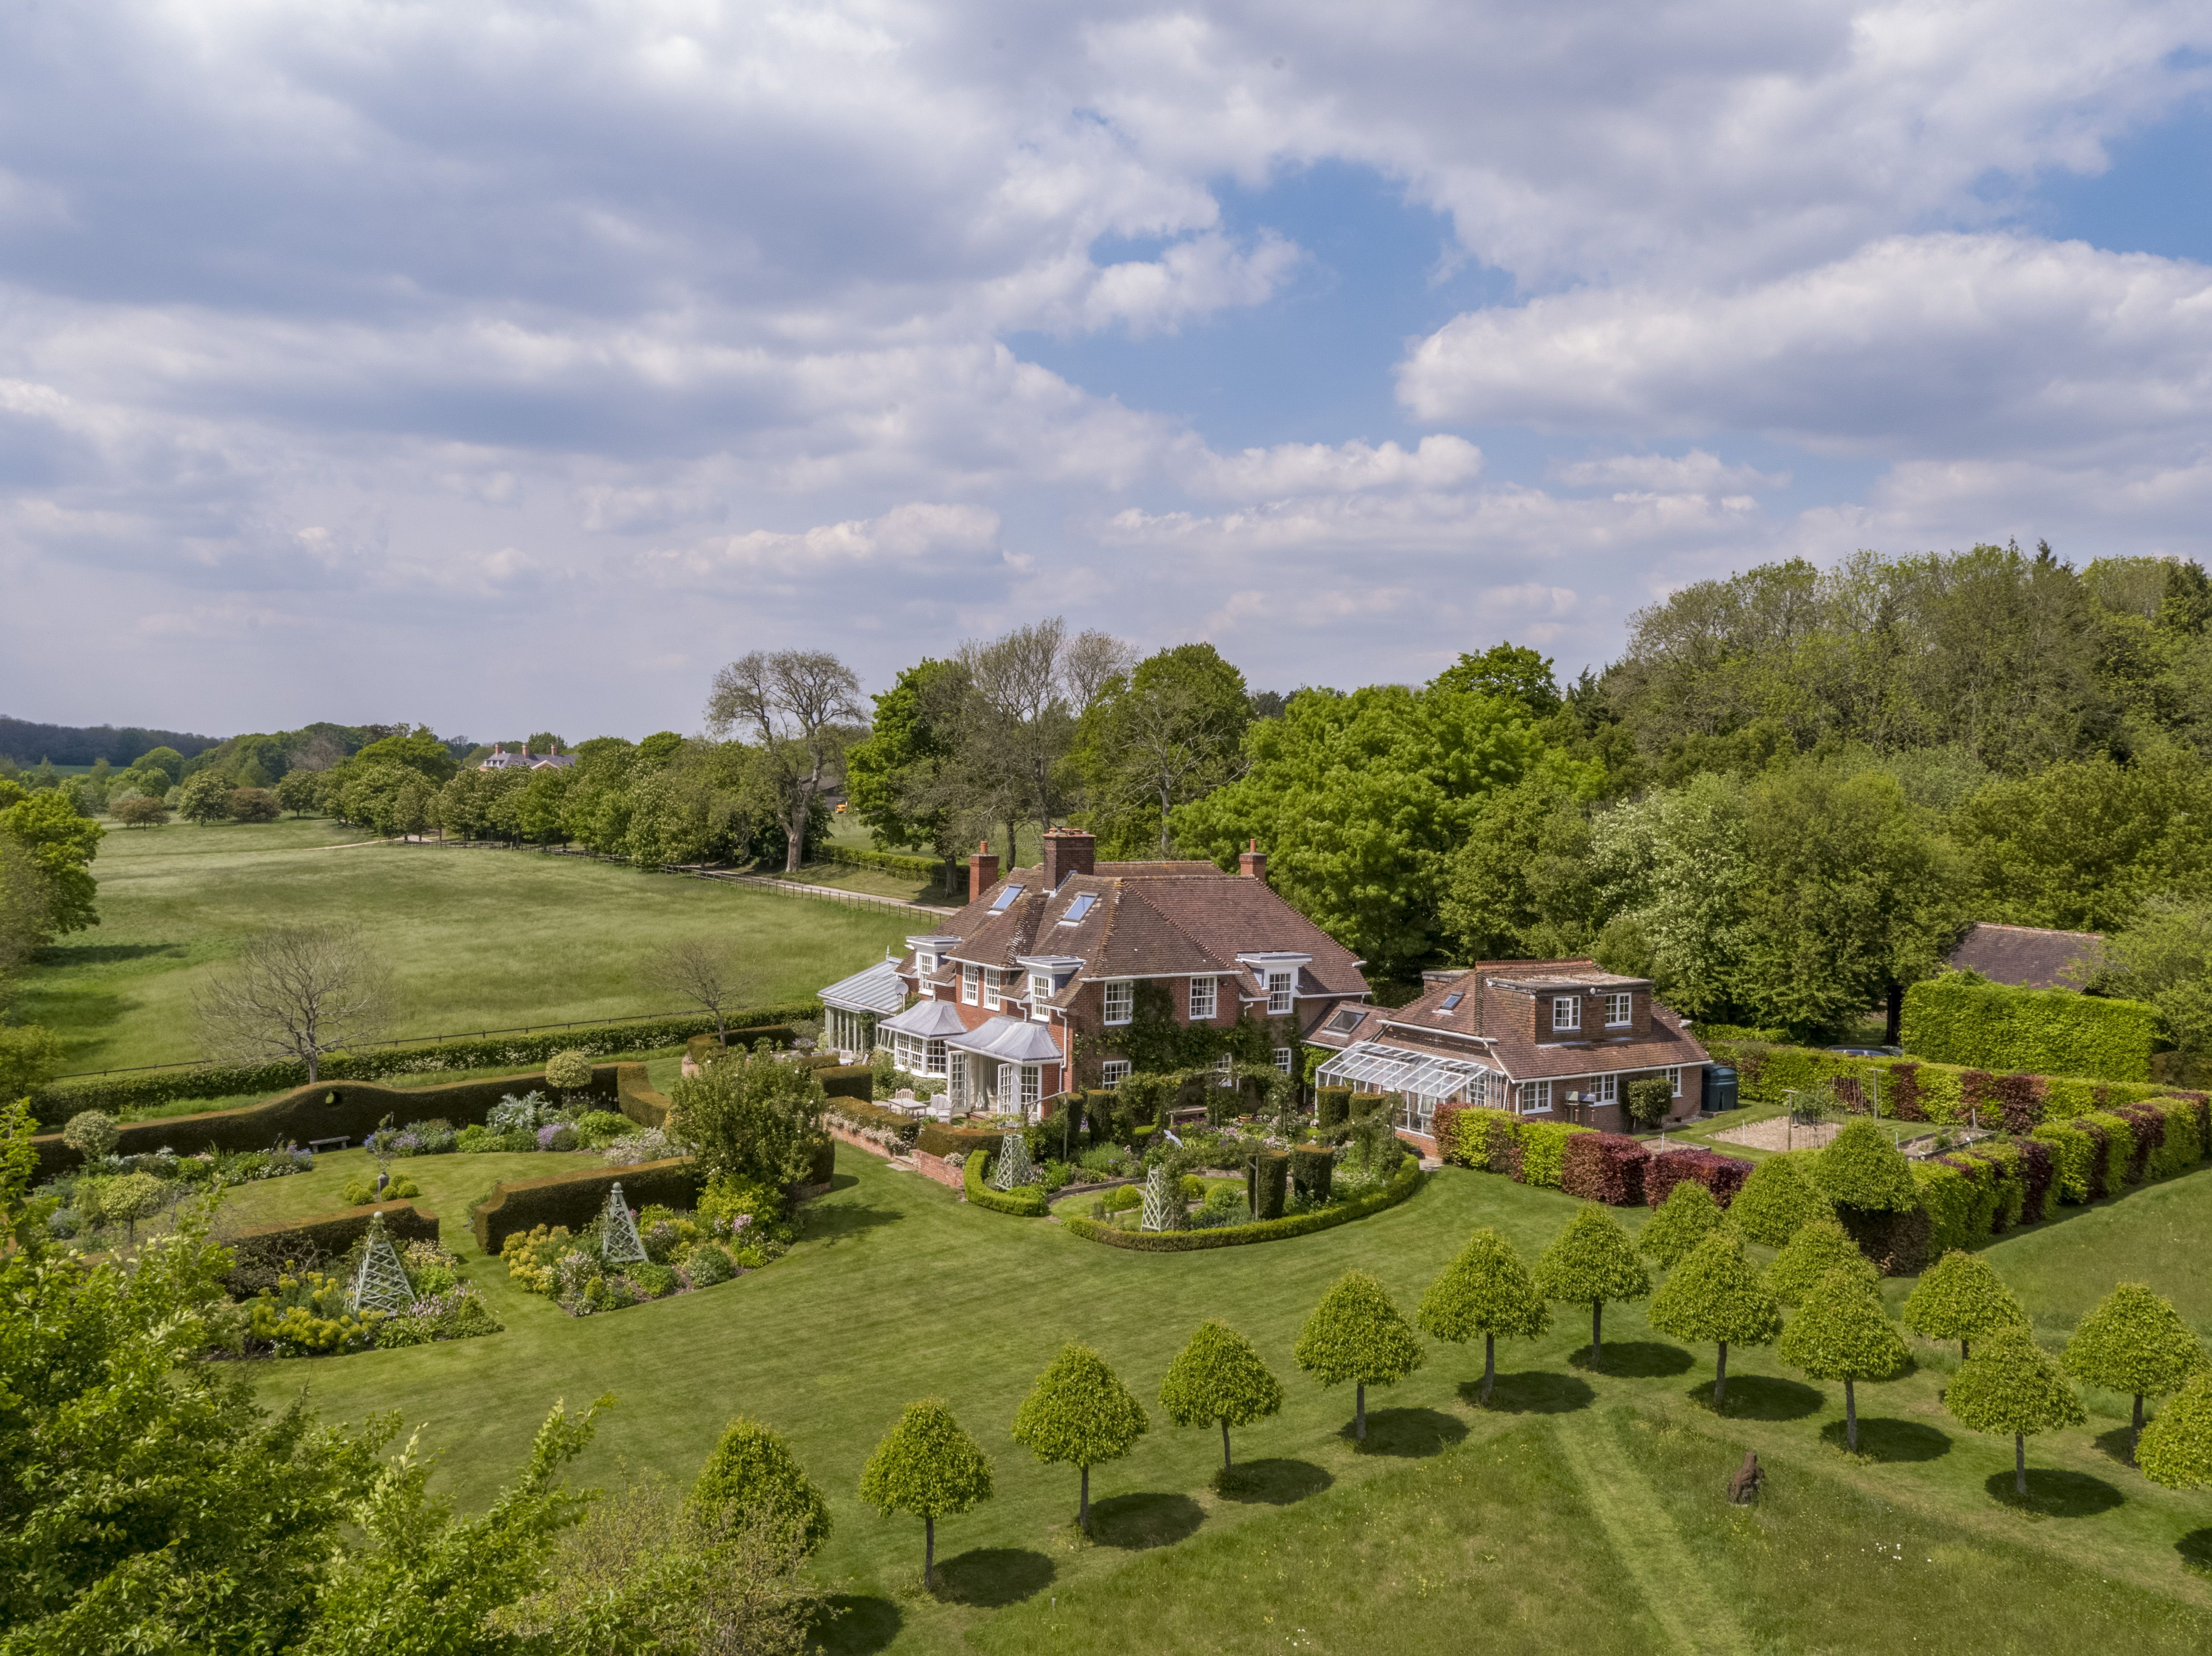 A beautifully situated country house in Hampshire